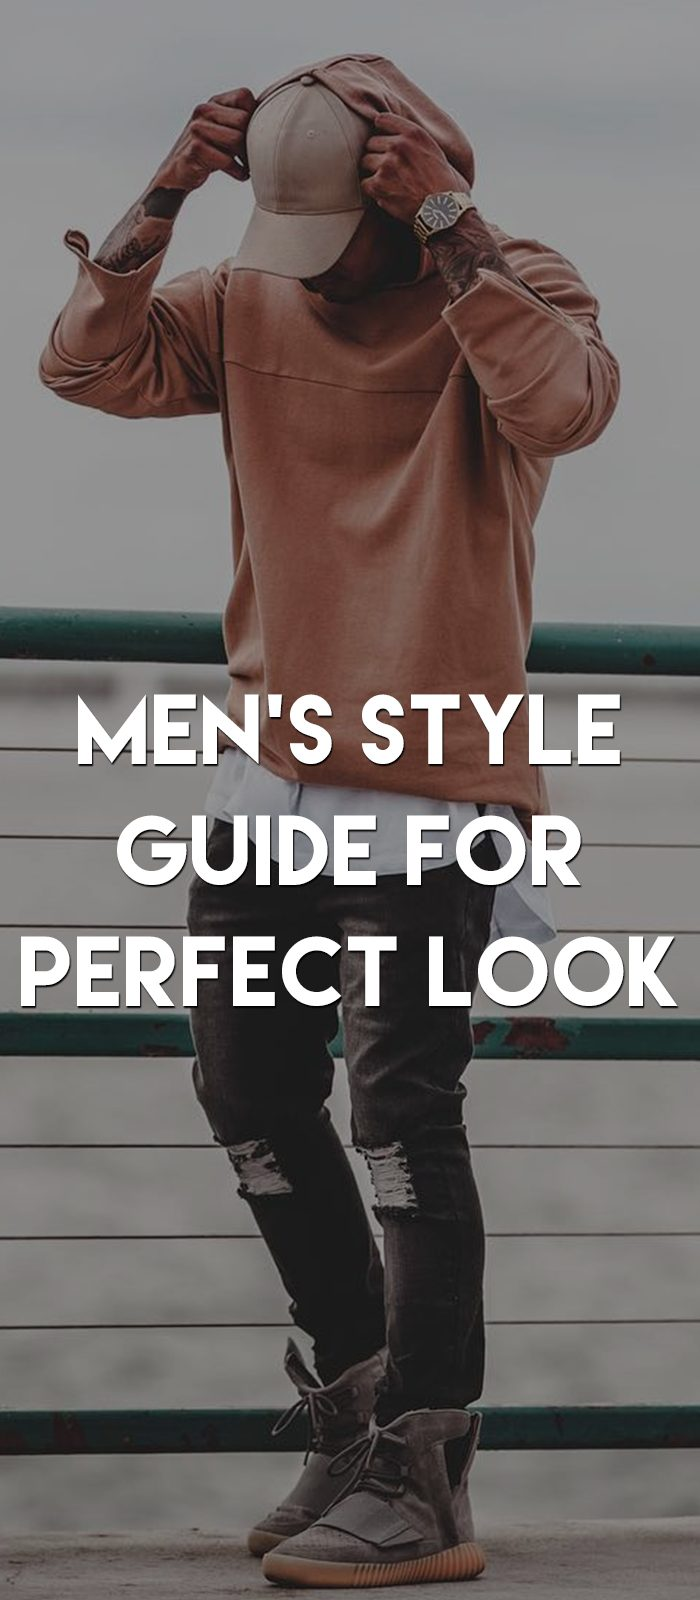 Style Guide For Perfect Look